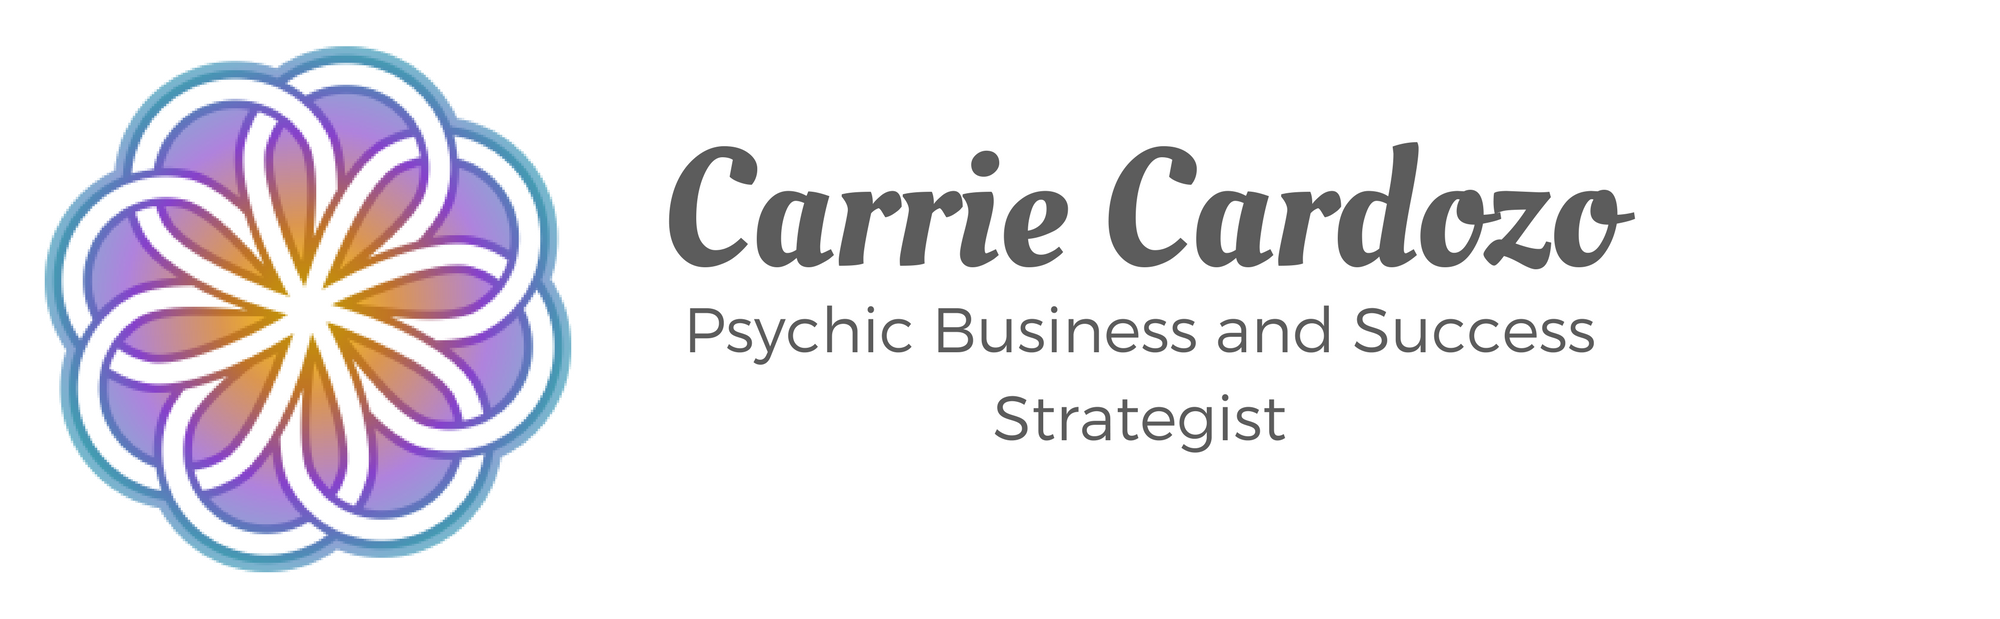 Carrie Cardozo Psychic Business Strategist